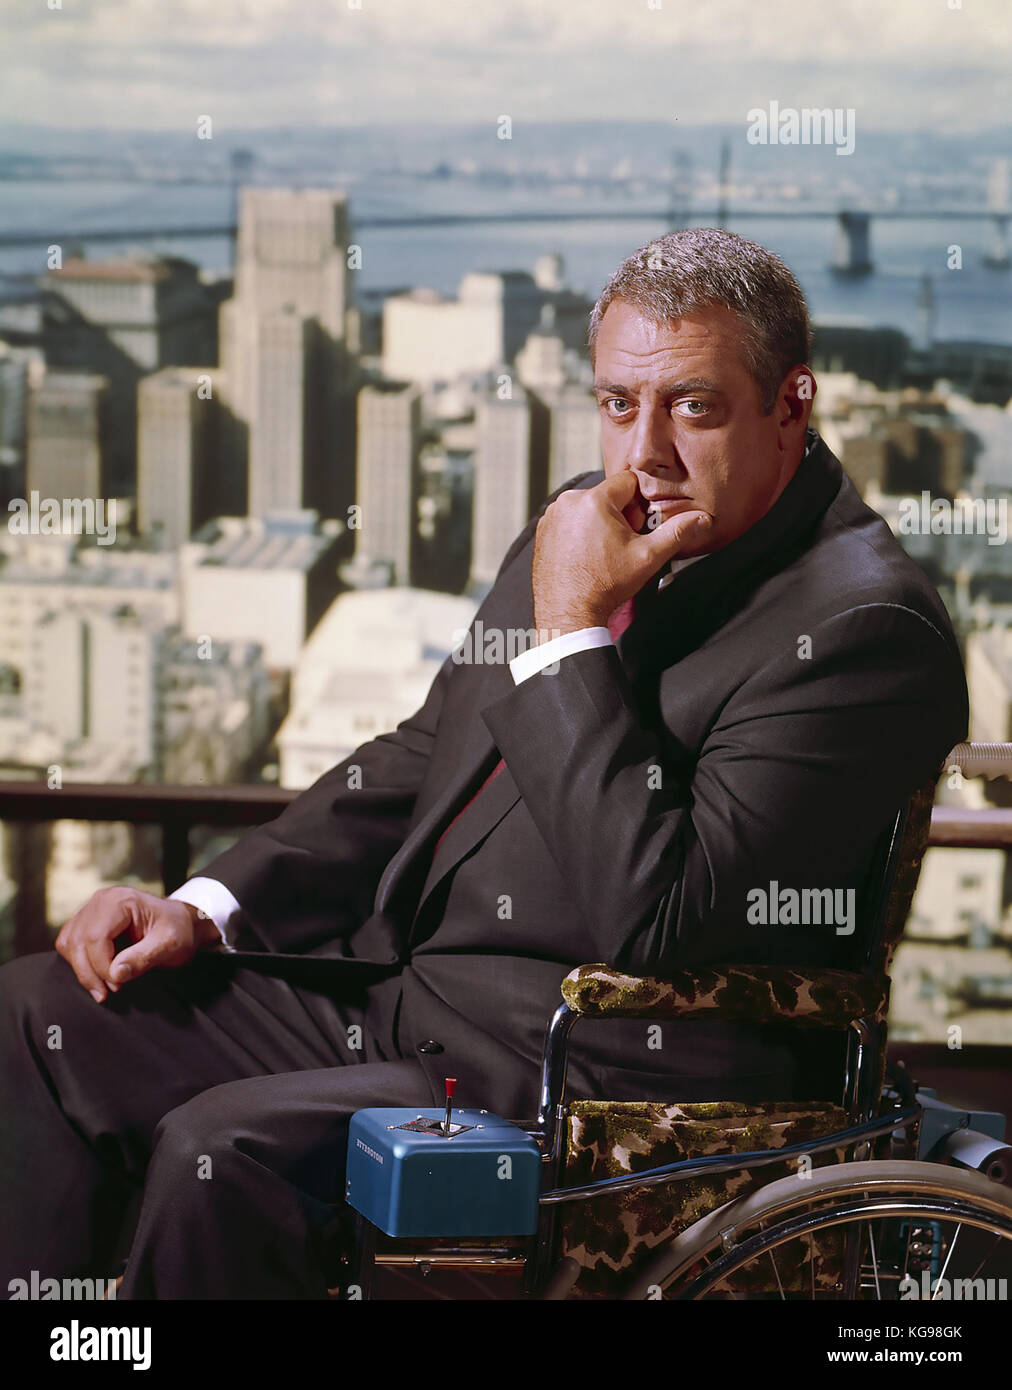 IRONSIDE Universal Television  series 1967-1975 with Raymond Burr - Stock Image